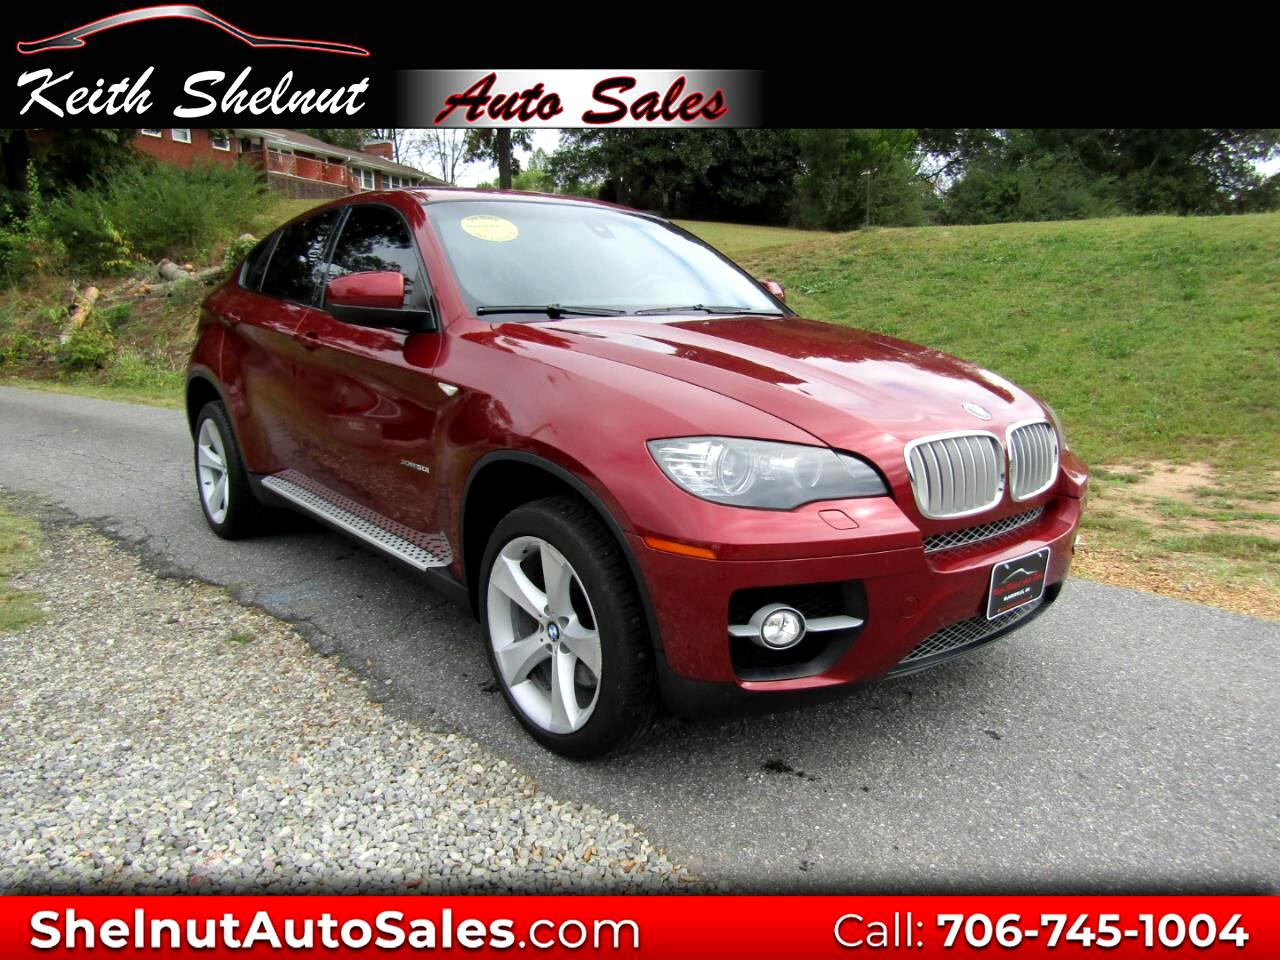 2008 BMW X6 AWD 4dr xDrive50i